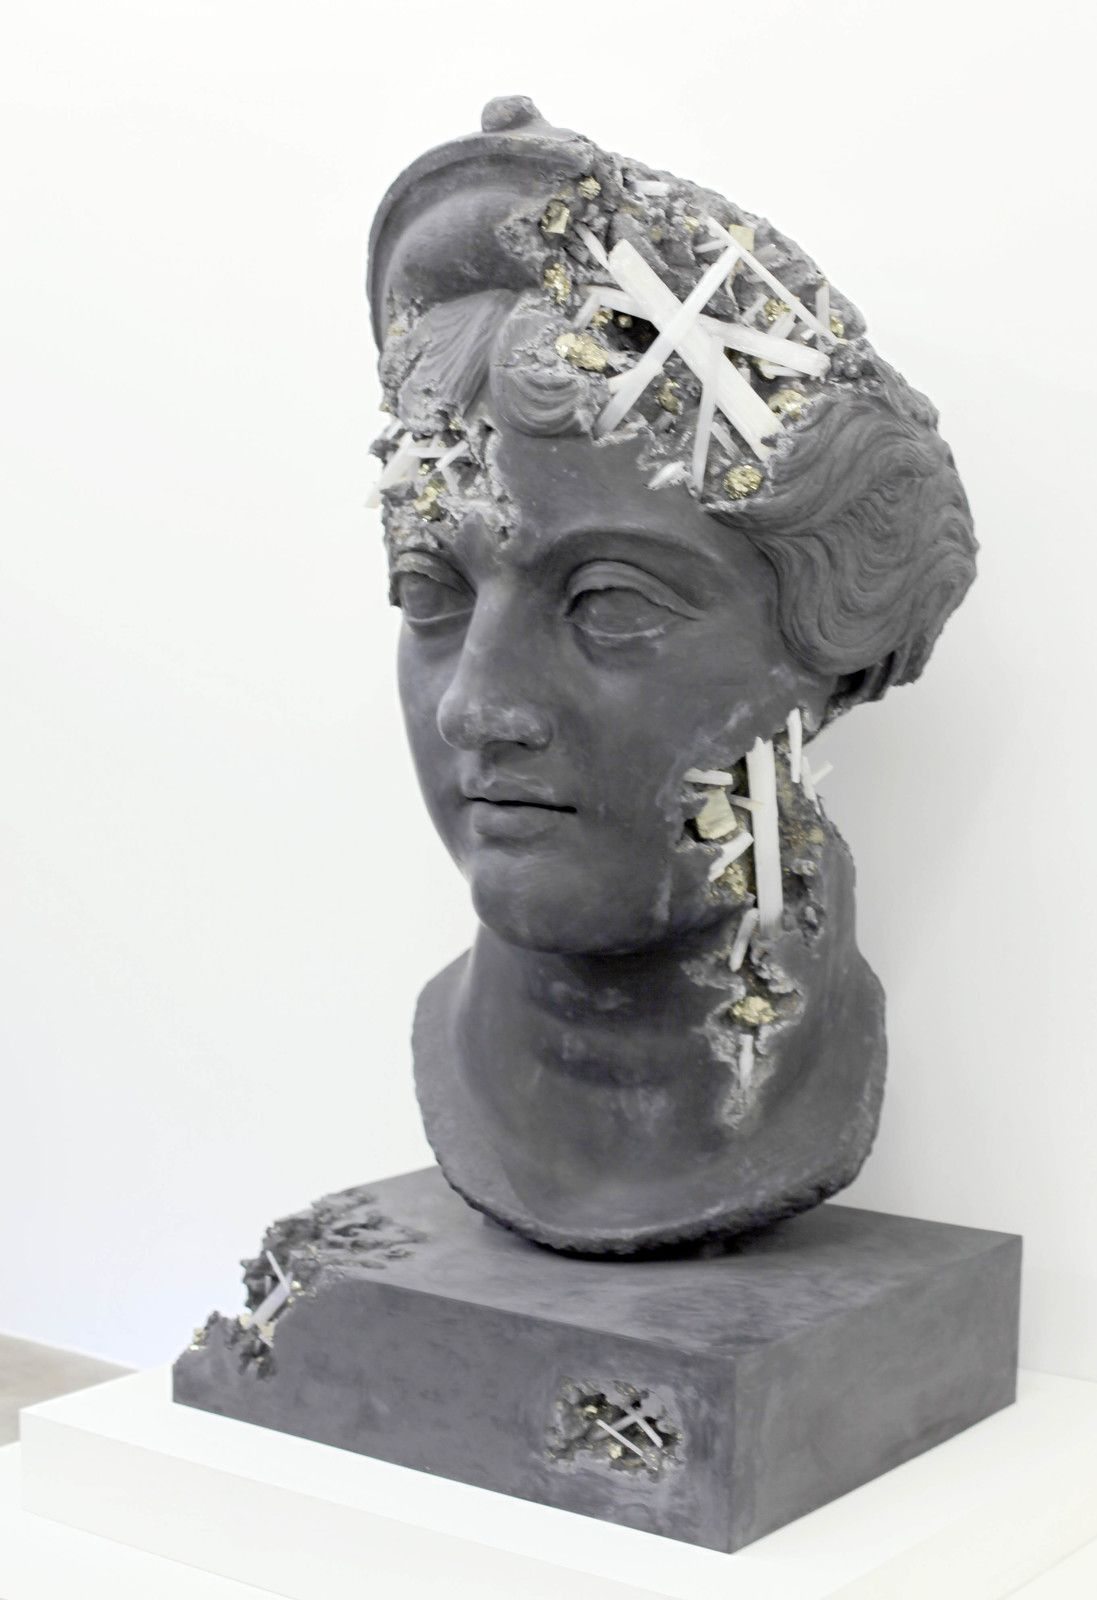 """Ash and Pyrite Erded Head of Lucille"", 2019 de Daniel ARSHAM - Courtesy de l'artiste et la galerie Perrotin © Photo Éric Simon"